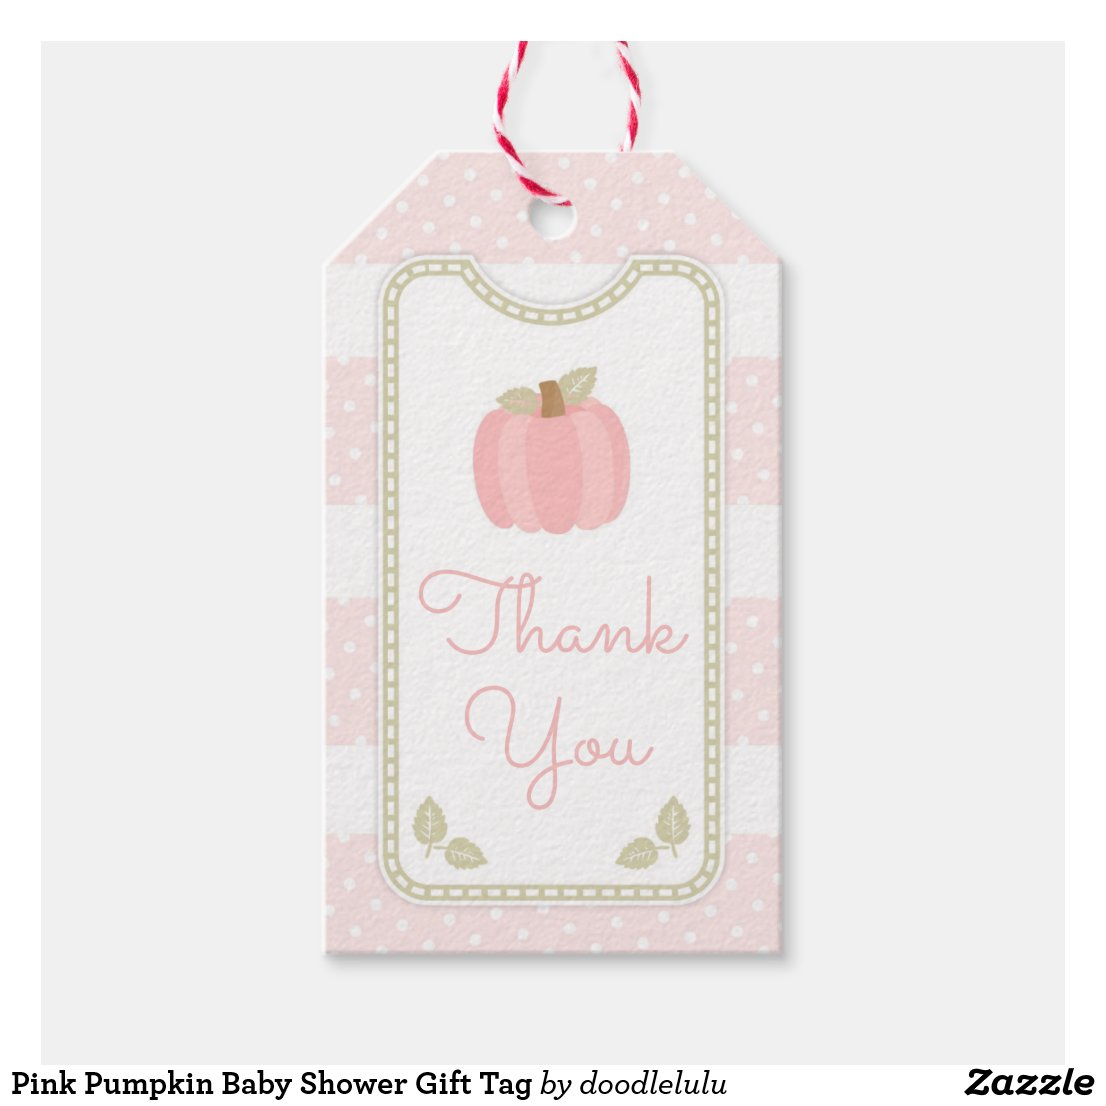 Pink Pumpkin Baby Shower Gift Tag